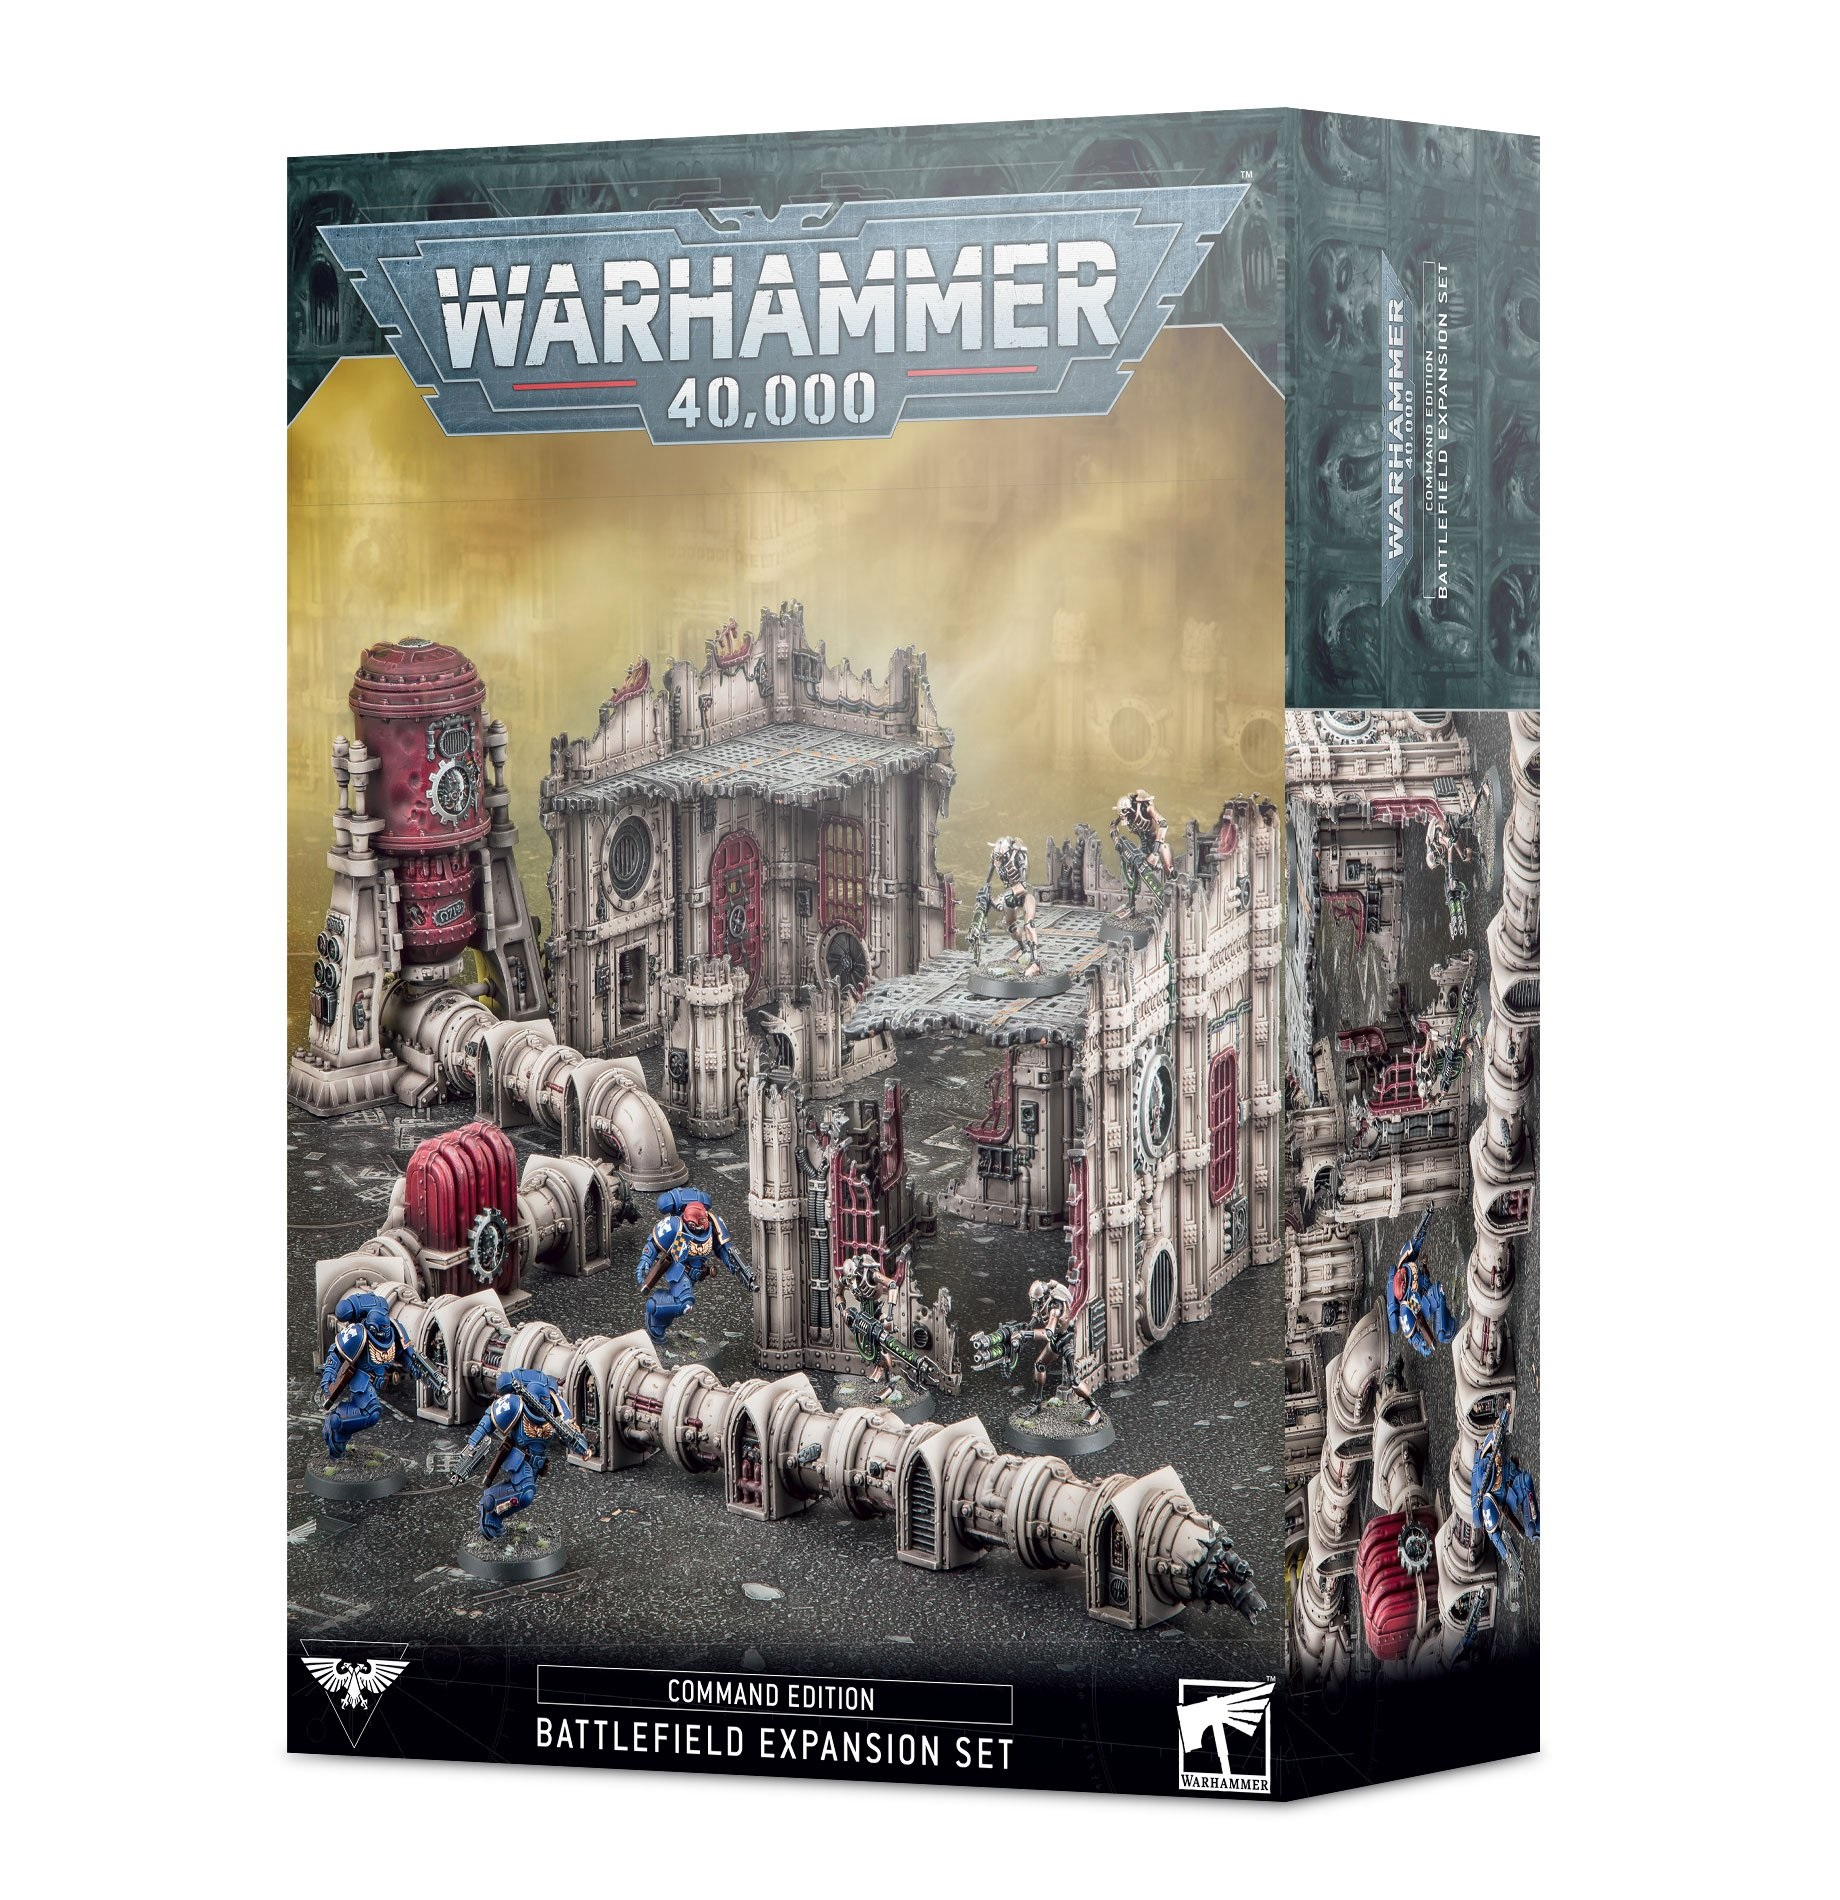 Command Edition Battlefield Expansion set